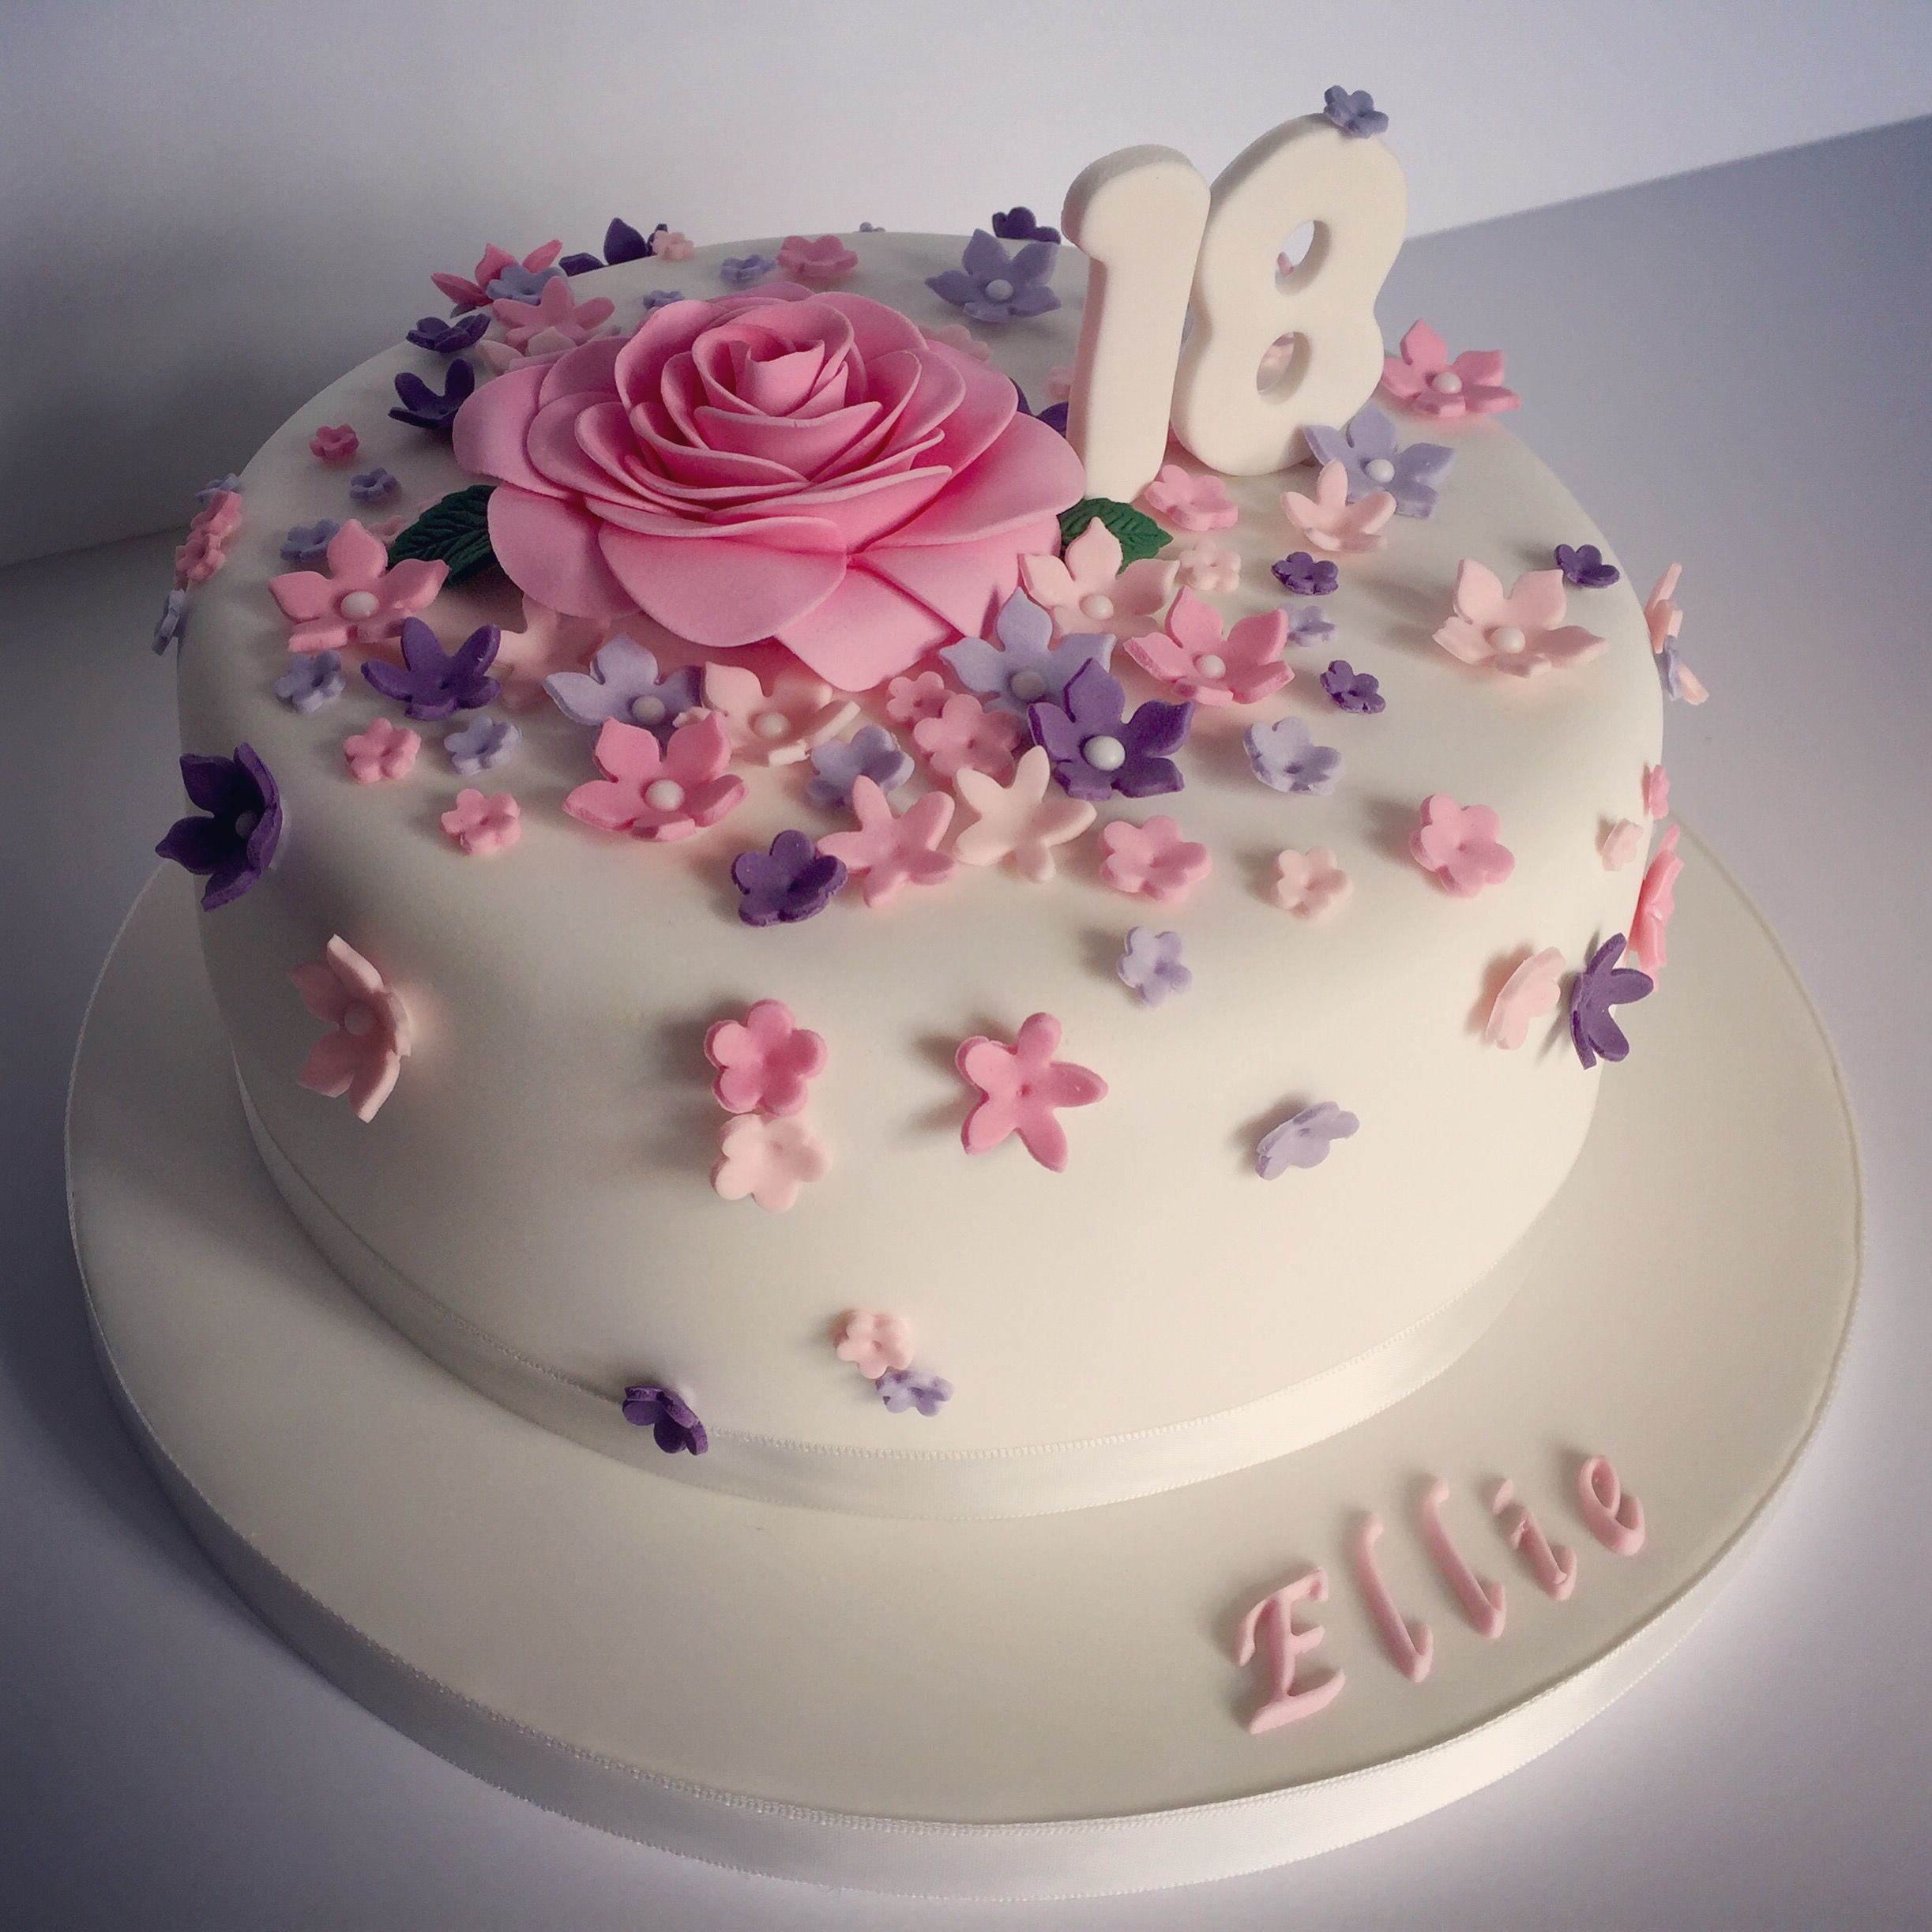 Simple But Extremely Cute Cake With Images 18th Birthday Cake